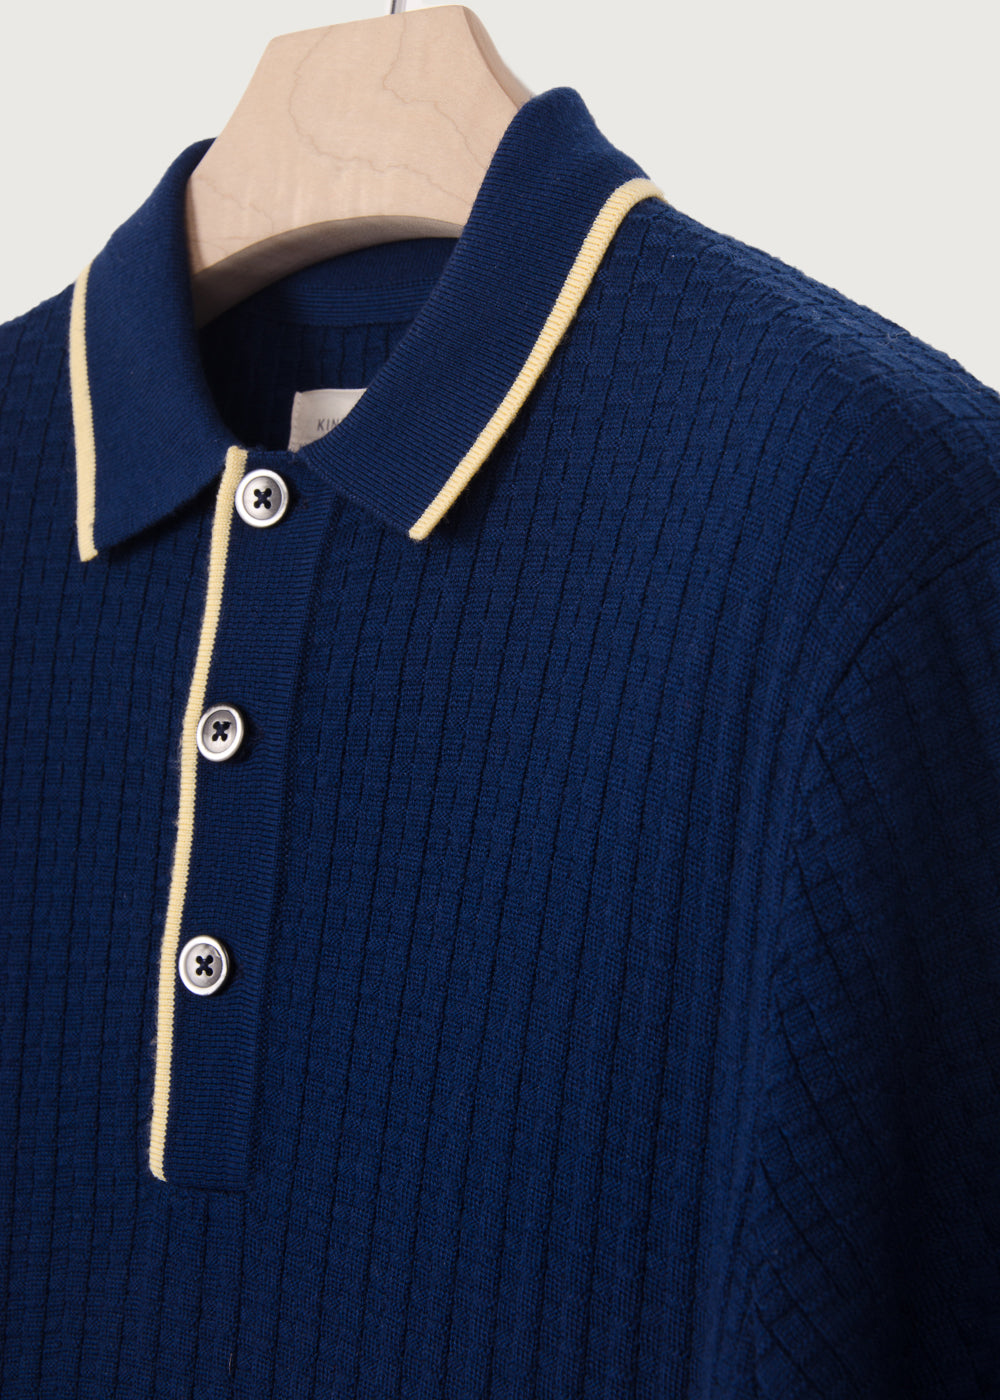 50's Inspired Navy Textured Polo - King & Tuckfield